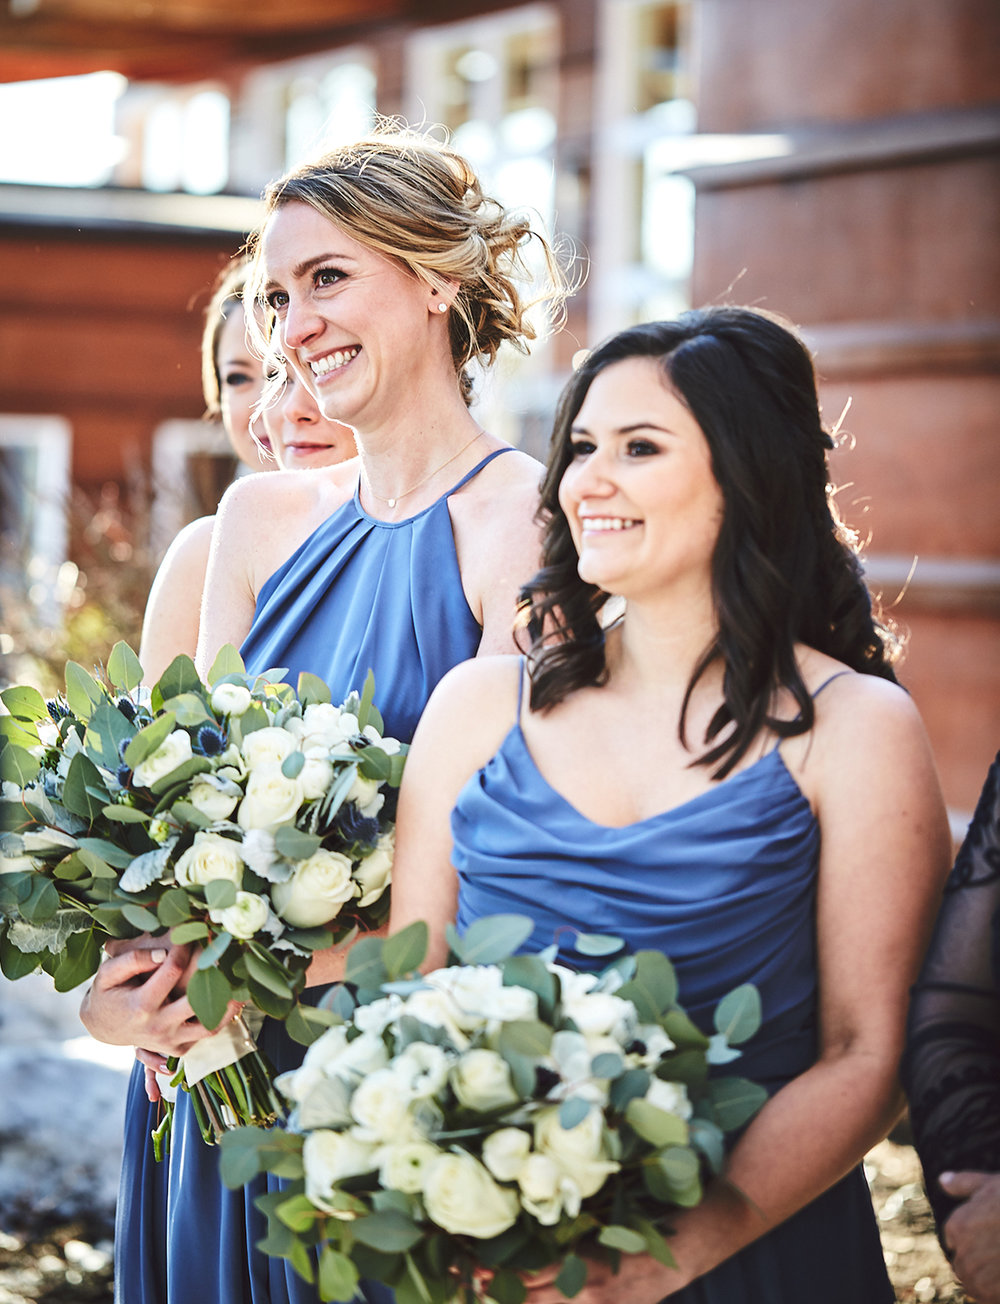 180324_StonehouseatStirlingRidgeWeddingPhotography_NJWeddingPhotographer_By_BriJohnsonWeddings_0103.jpg